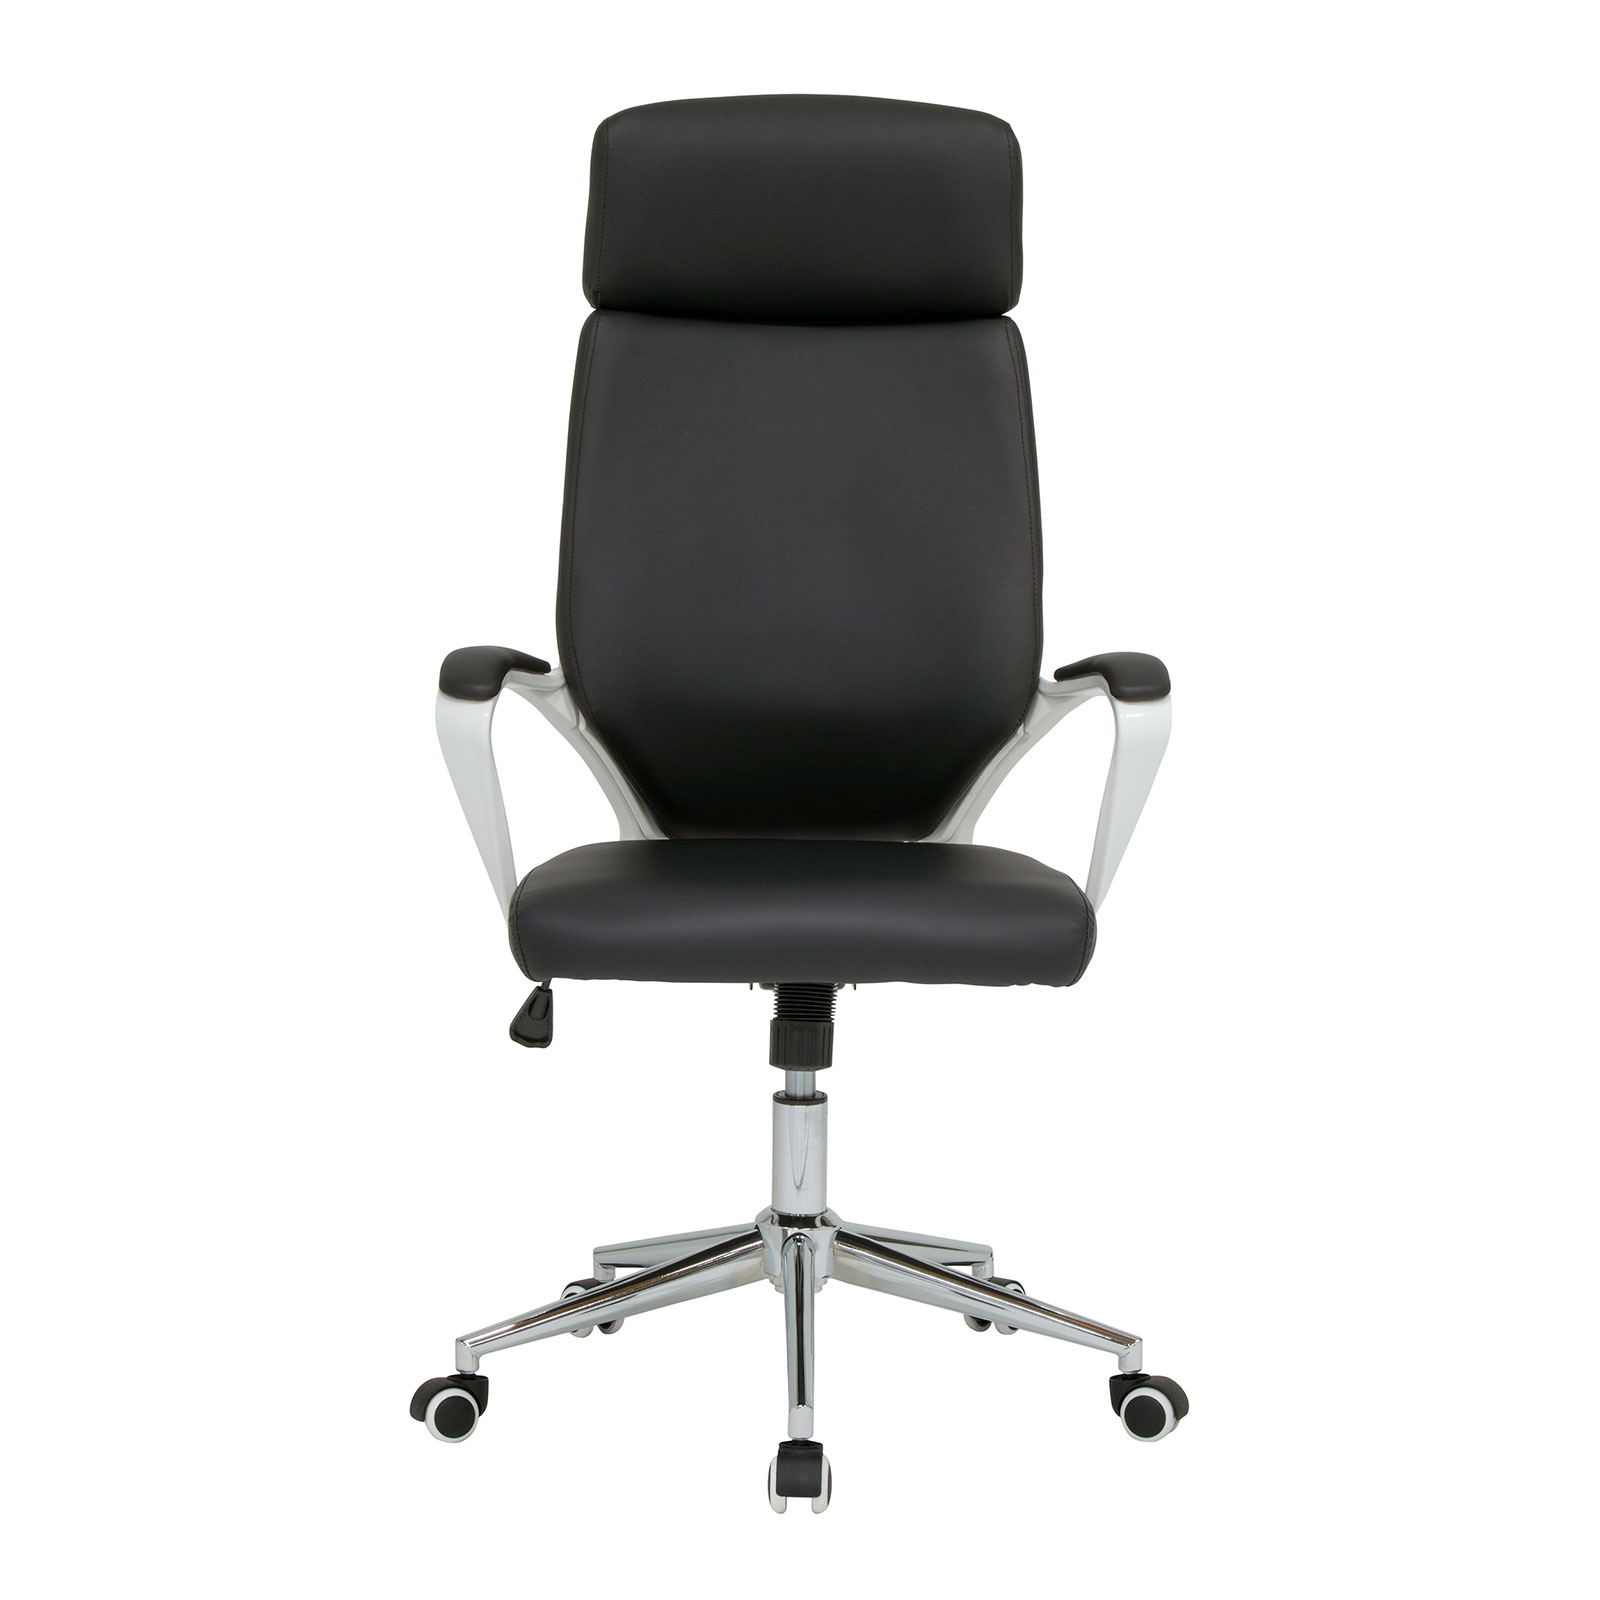 10662-High-Back-Deluxe-Managers-Chair-front